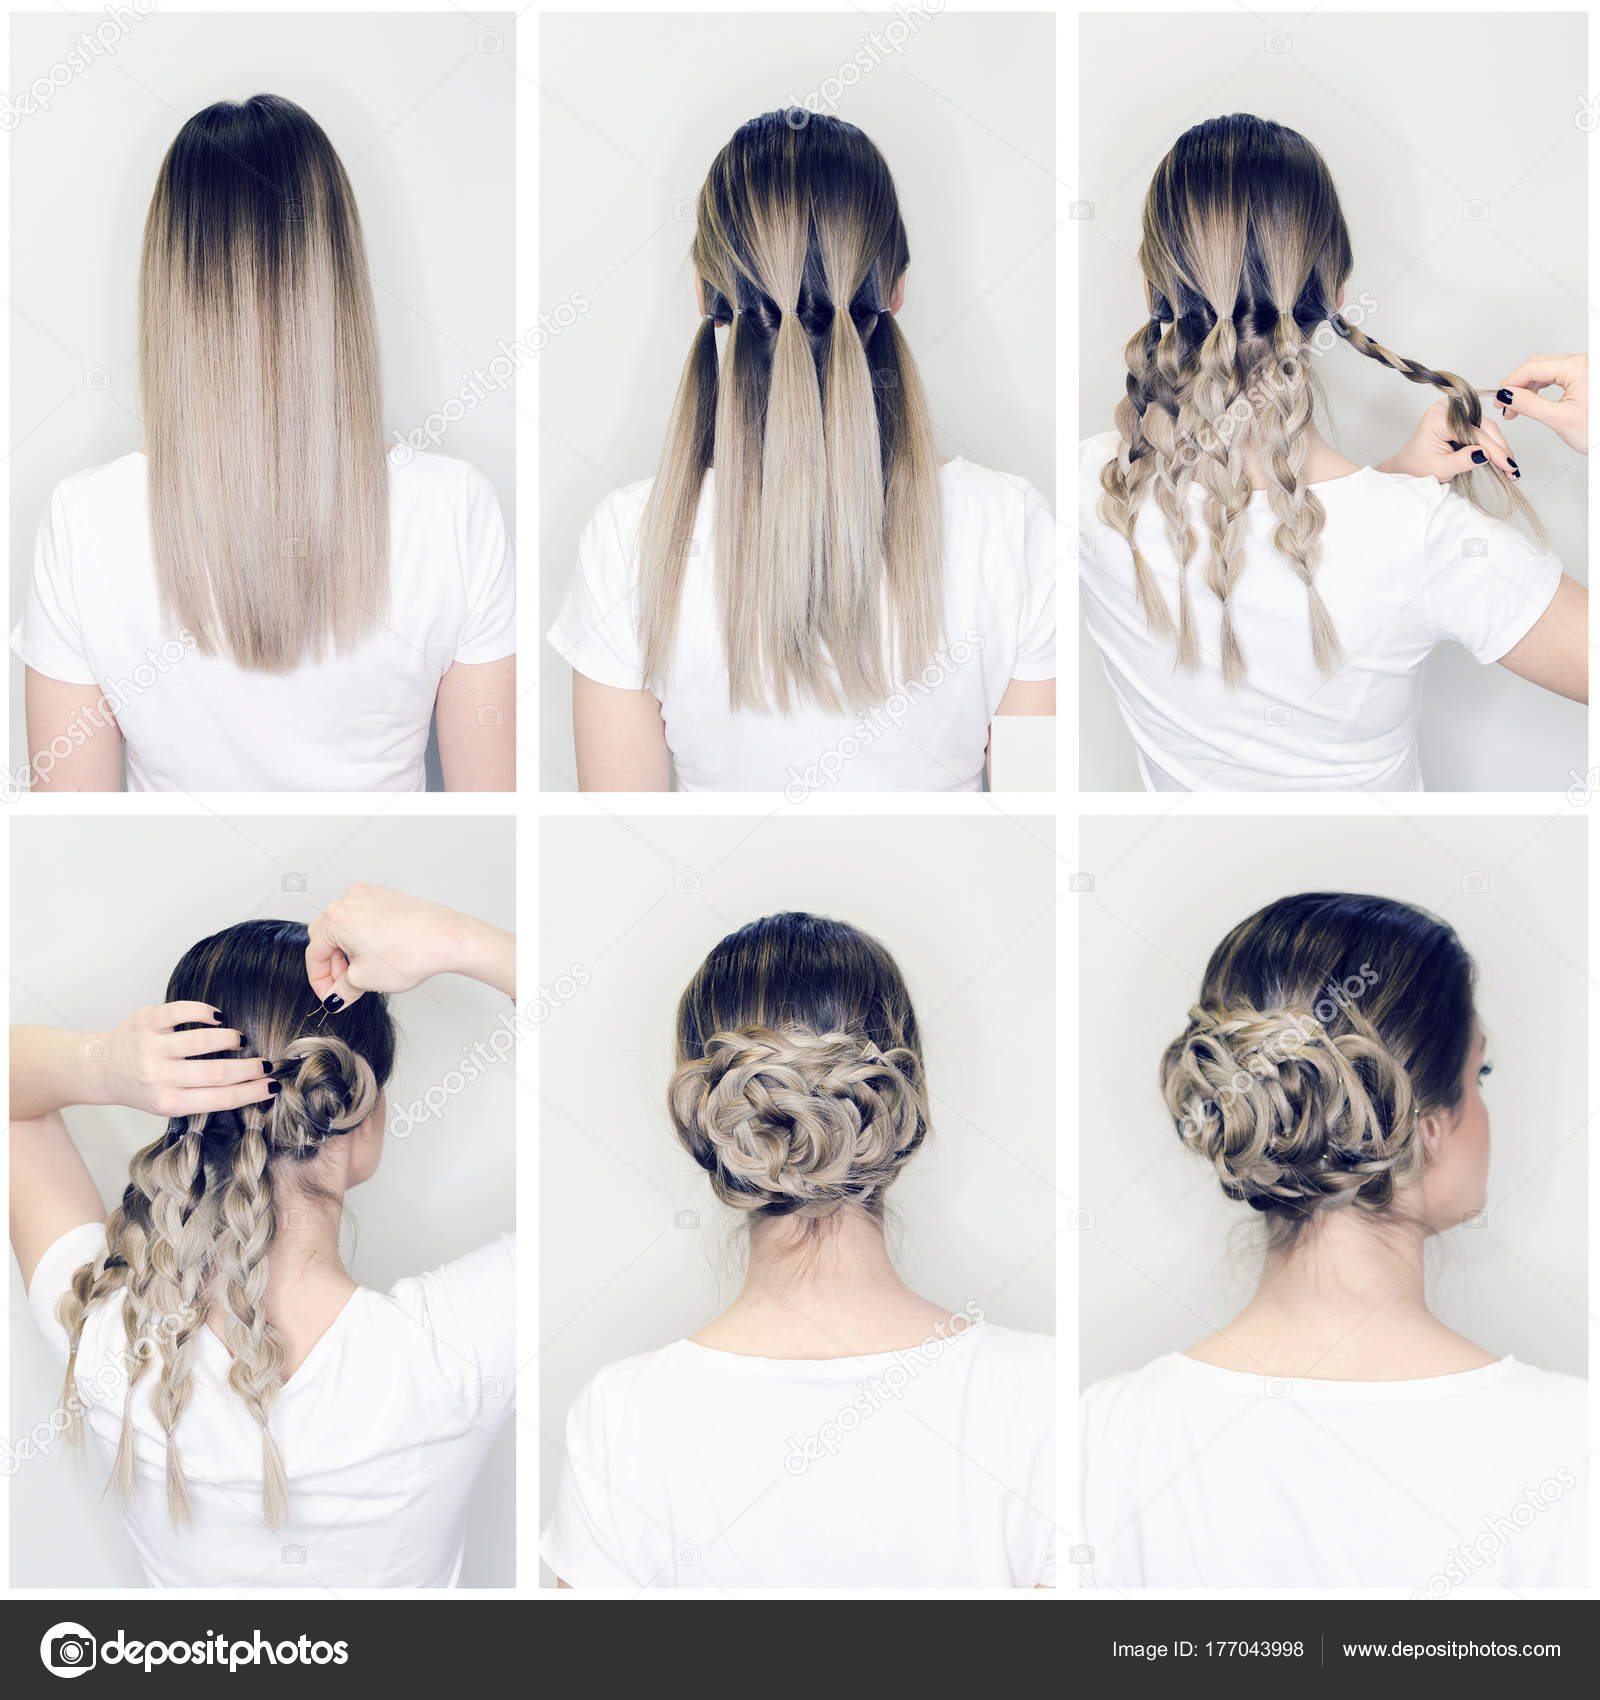 Pics: hairstyle step by step image | Hairstyle Tutorial ...